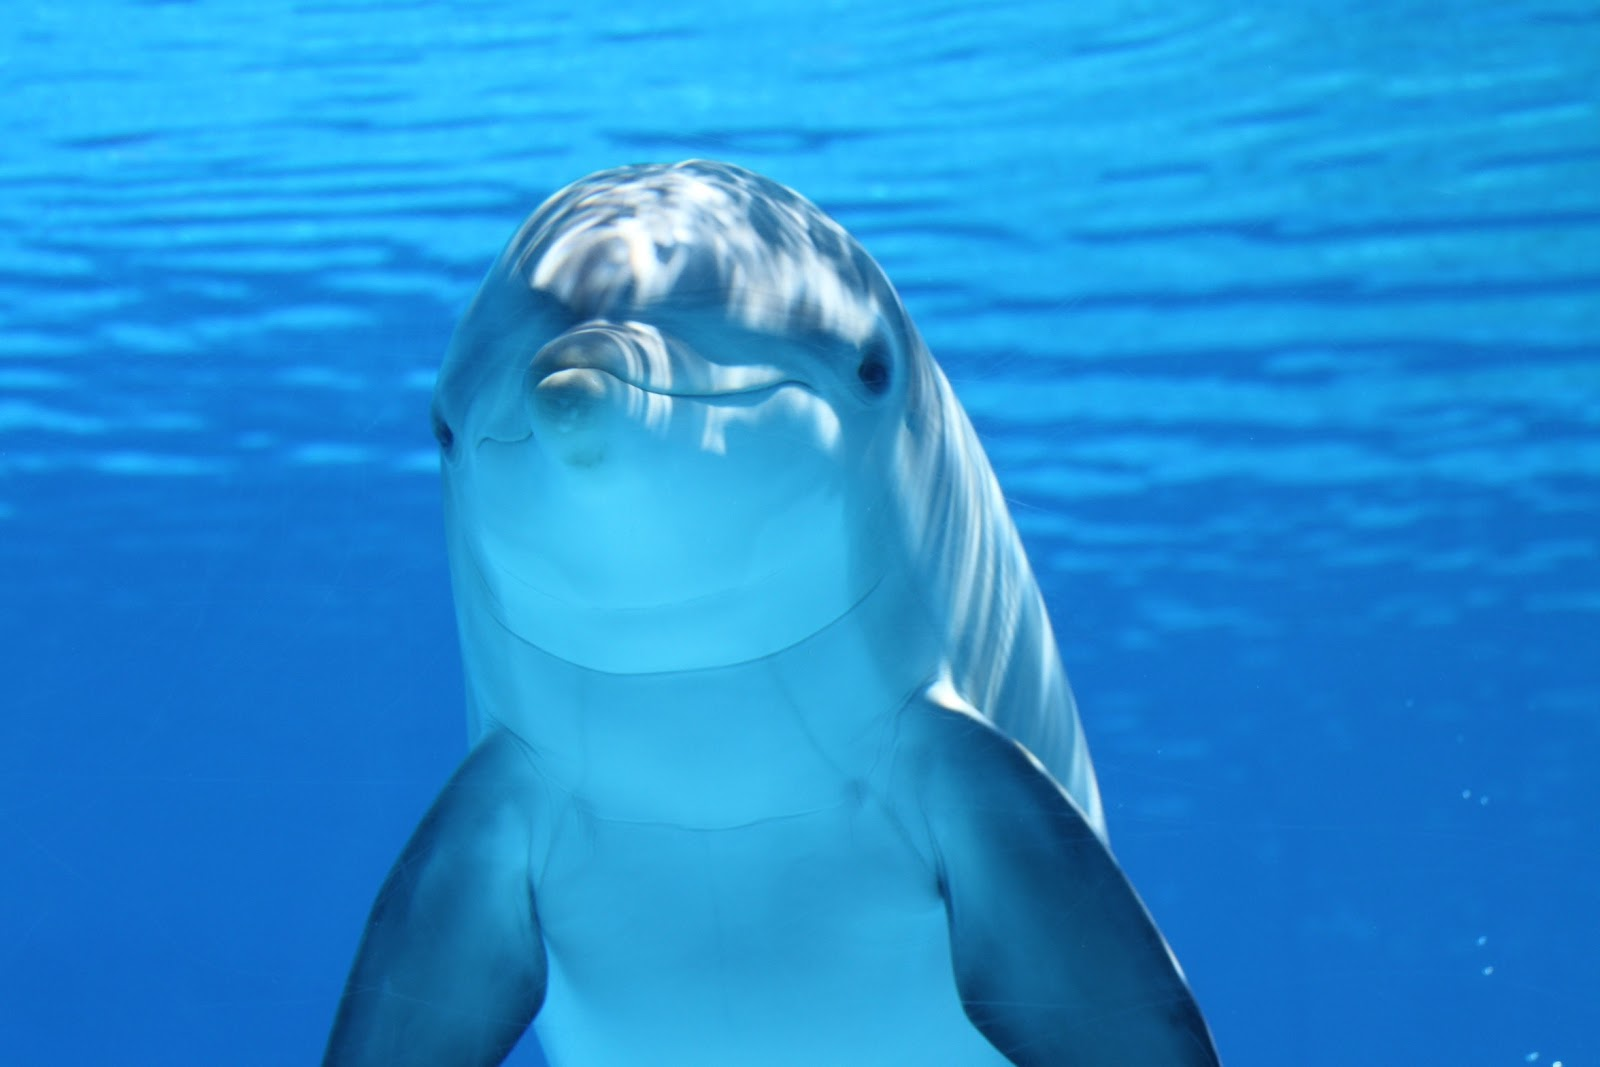 white-and-gray-dolphin-on-blue-water-pictures